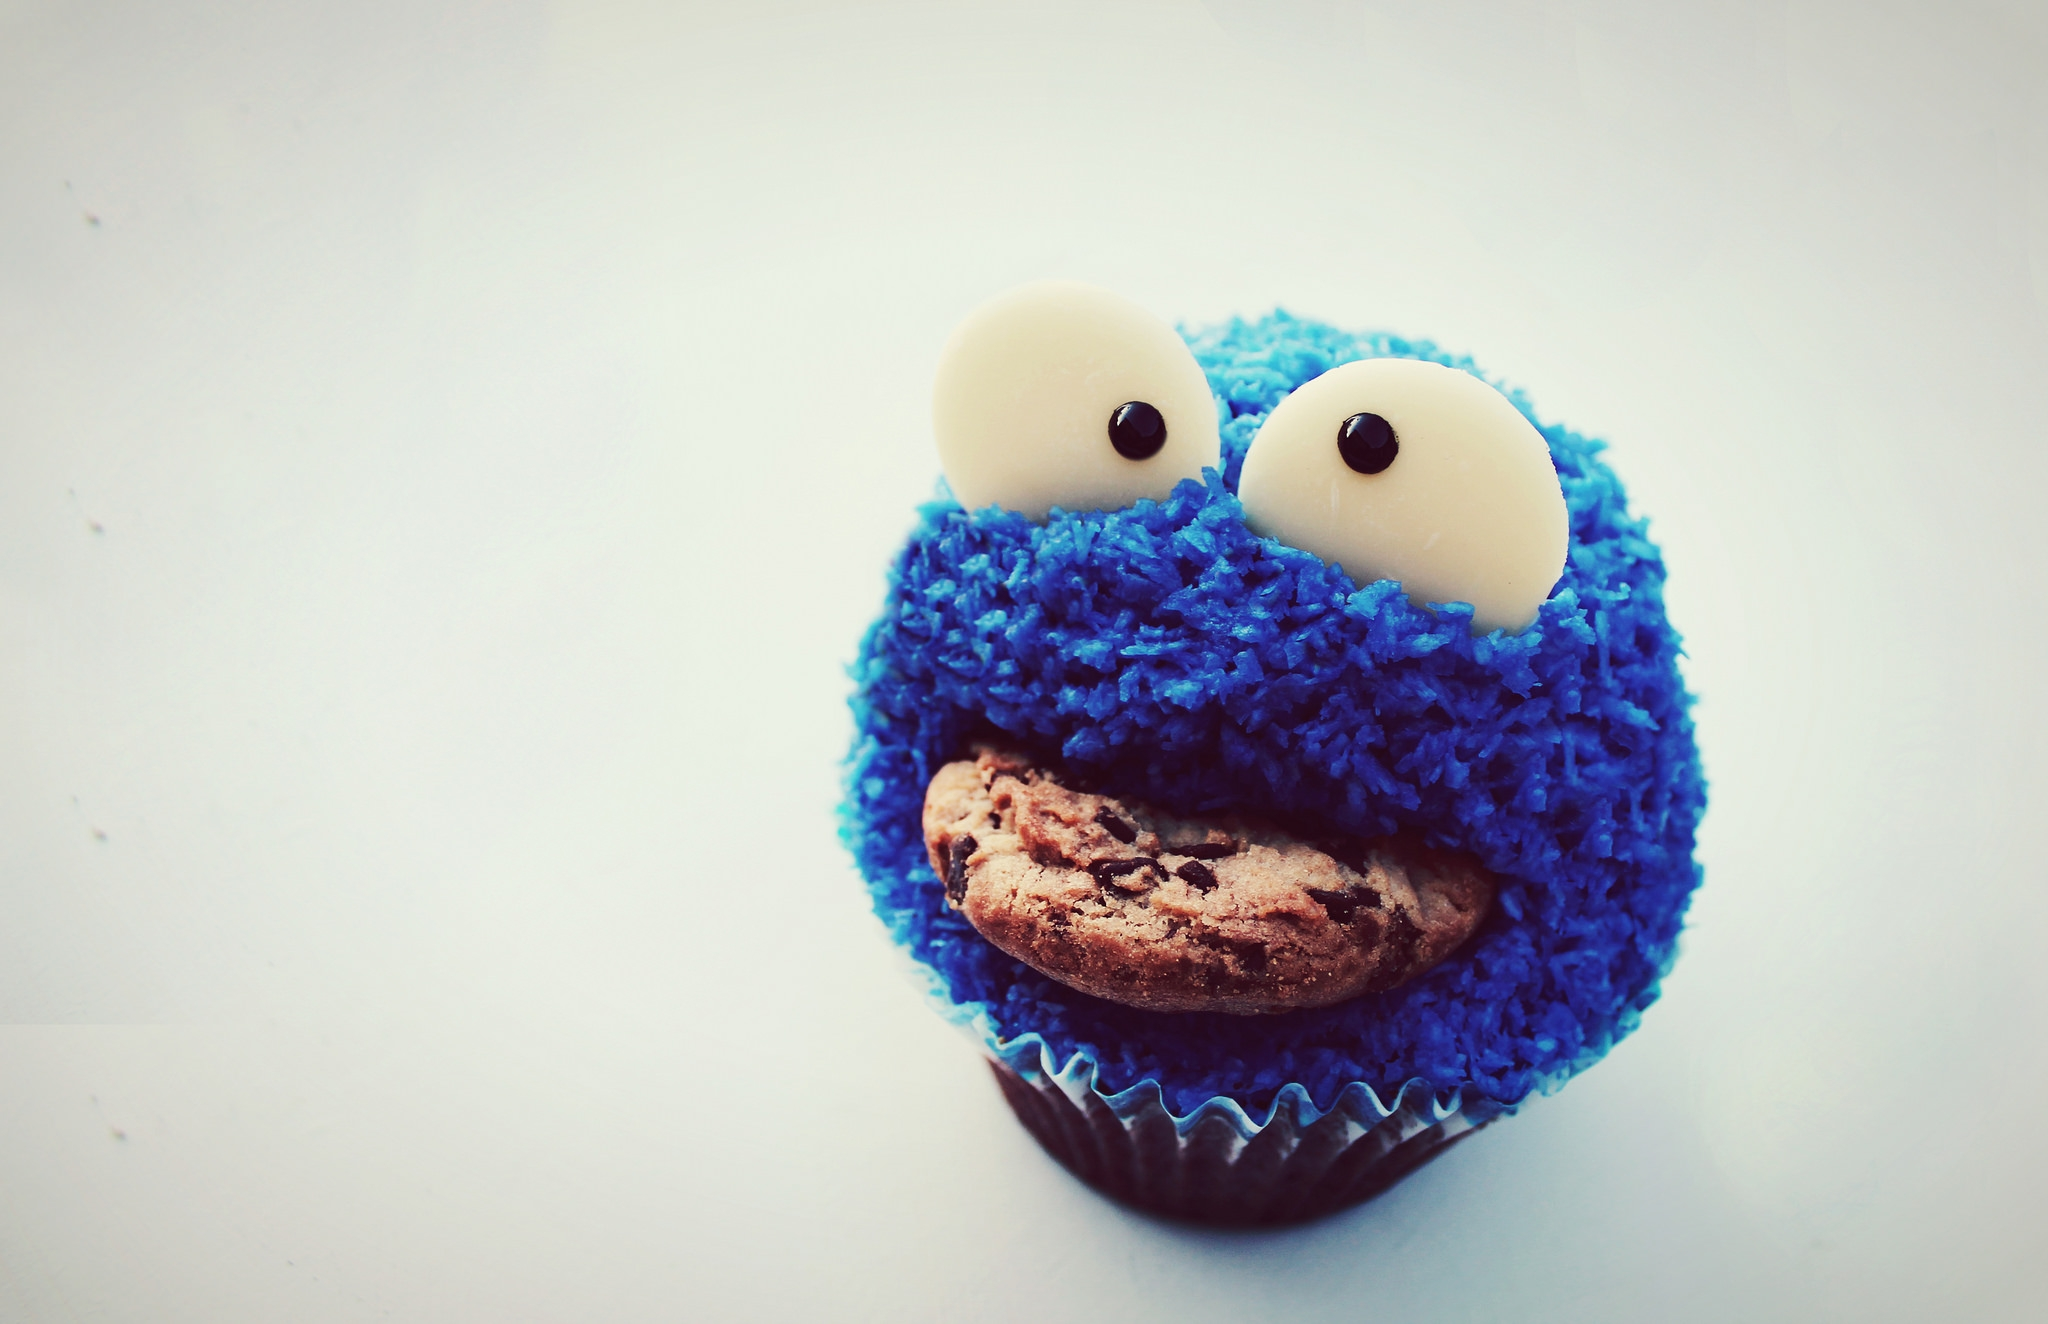 A Cookie monster cupcake made by me.